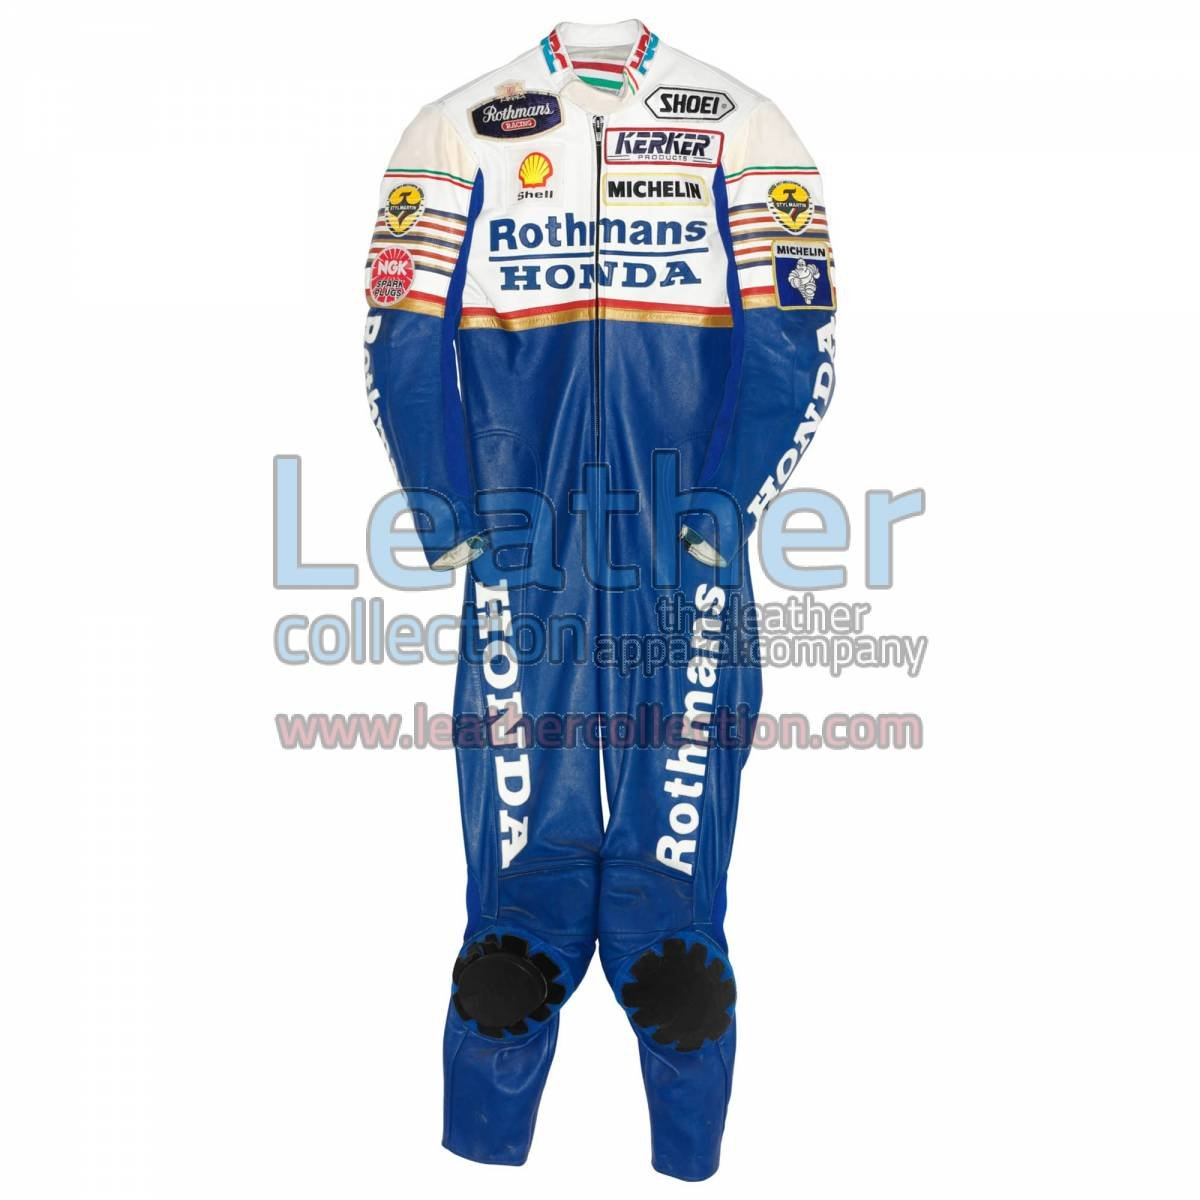 Eddie Lawson Rothmans honda GP 1989 Leathers